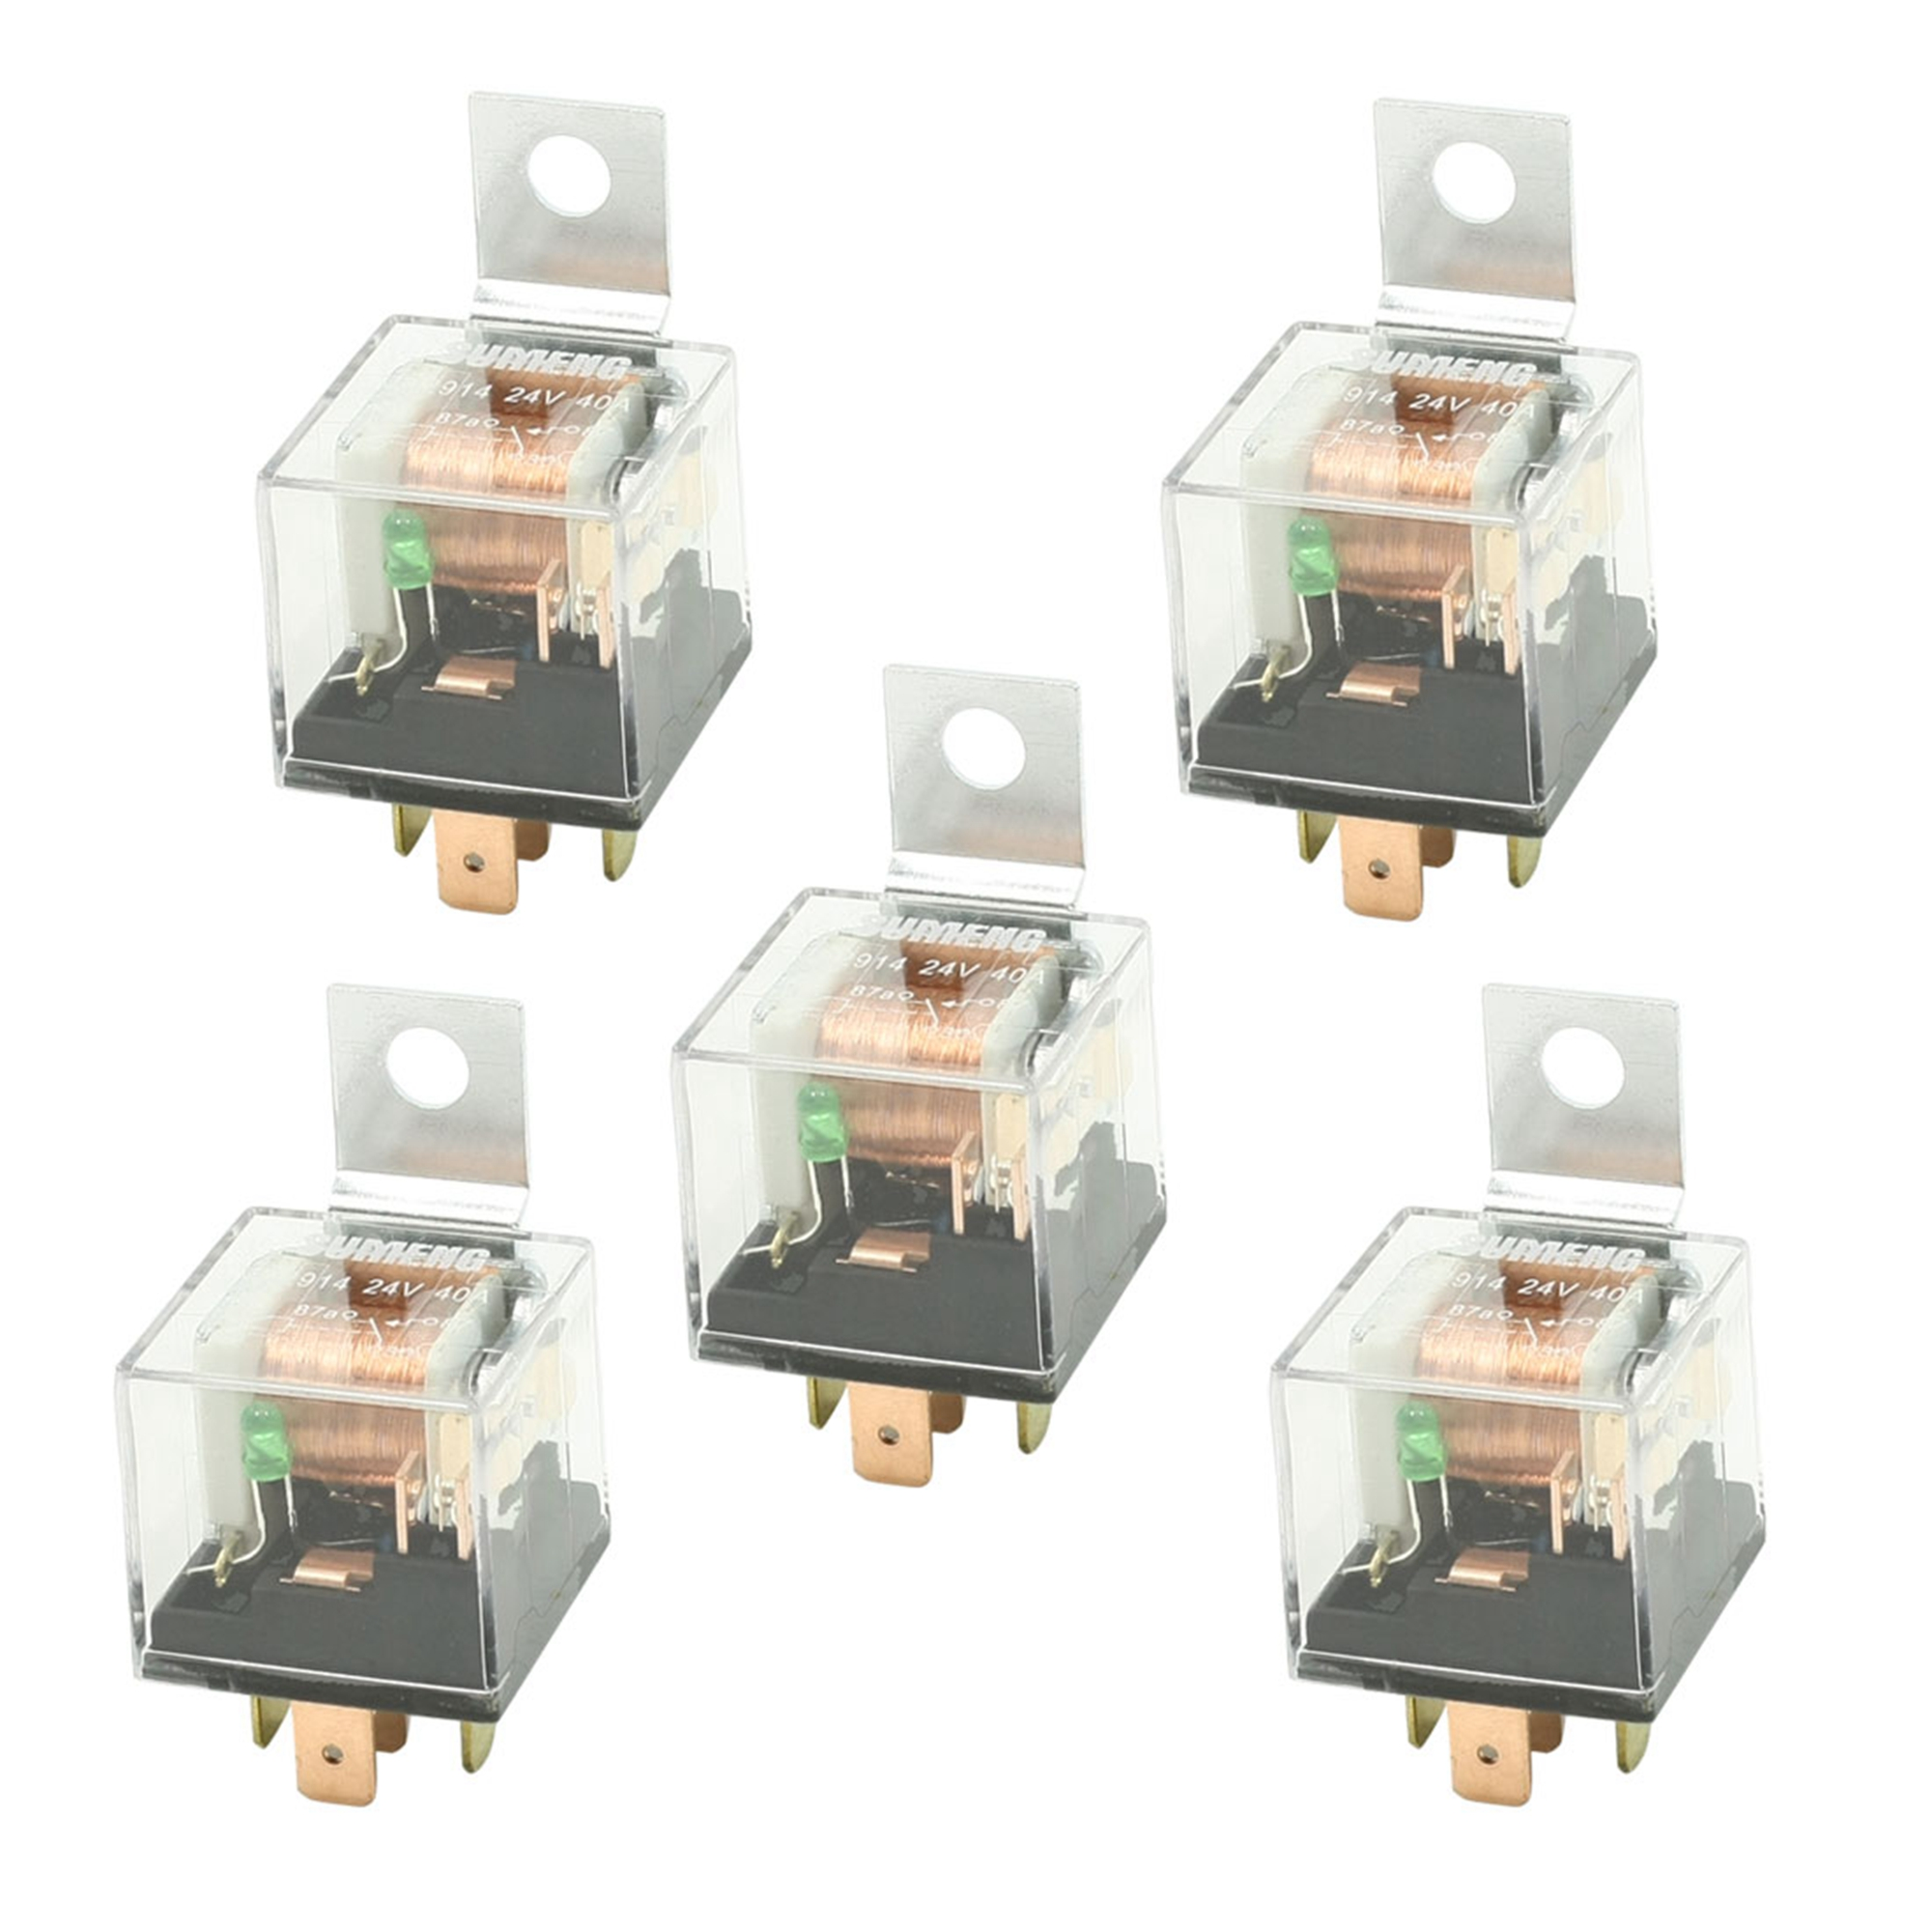 DC 24V 40A 1NO+1NC SPDT 5 Pin Male Plug Green Pilot Lamp Auto Car Relay 5 Pcs